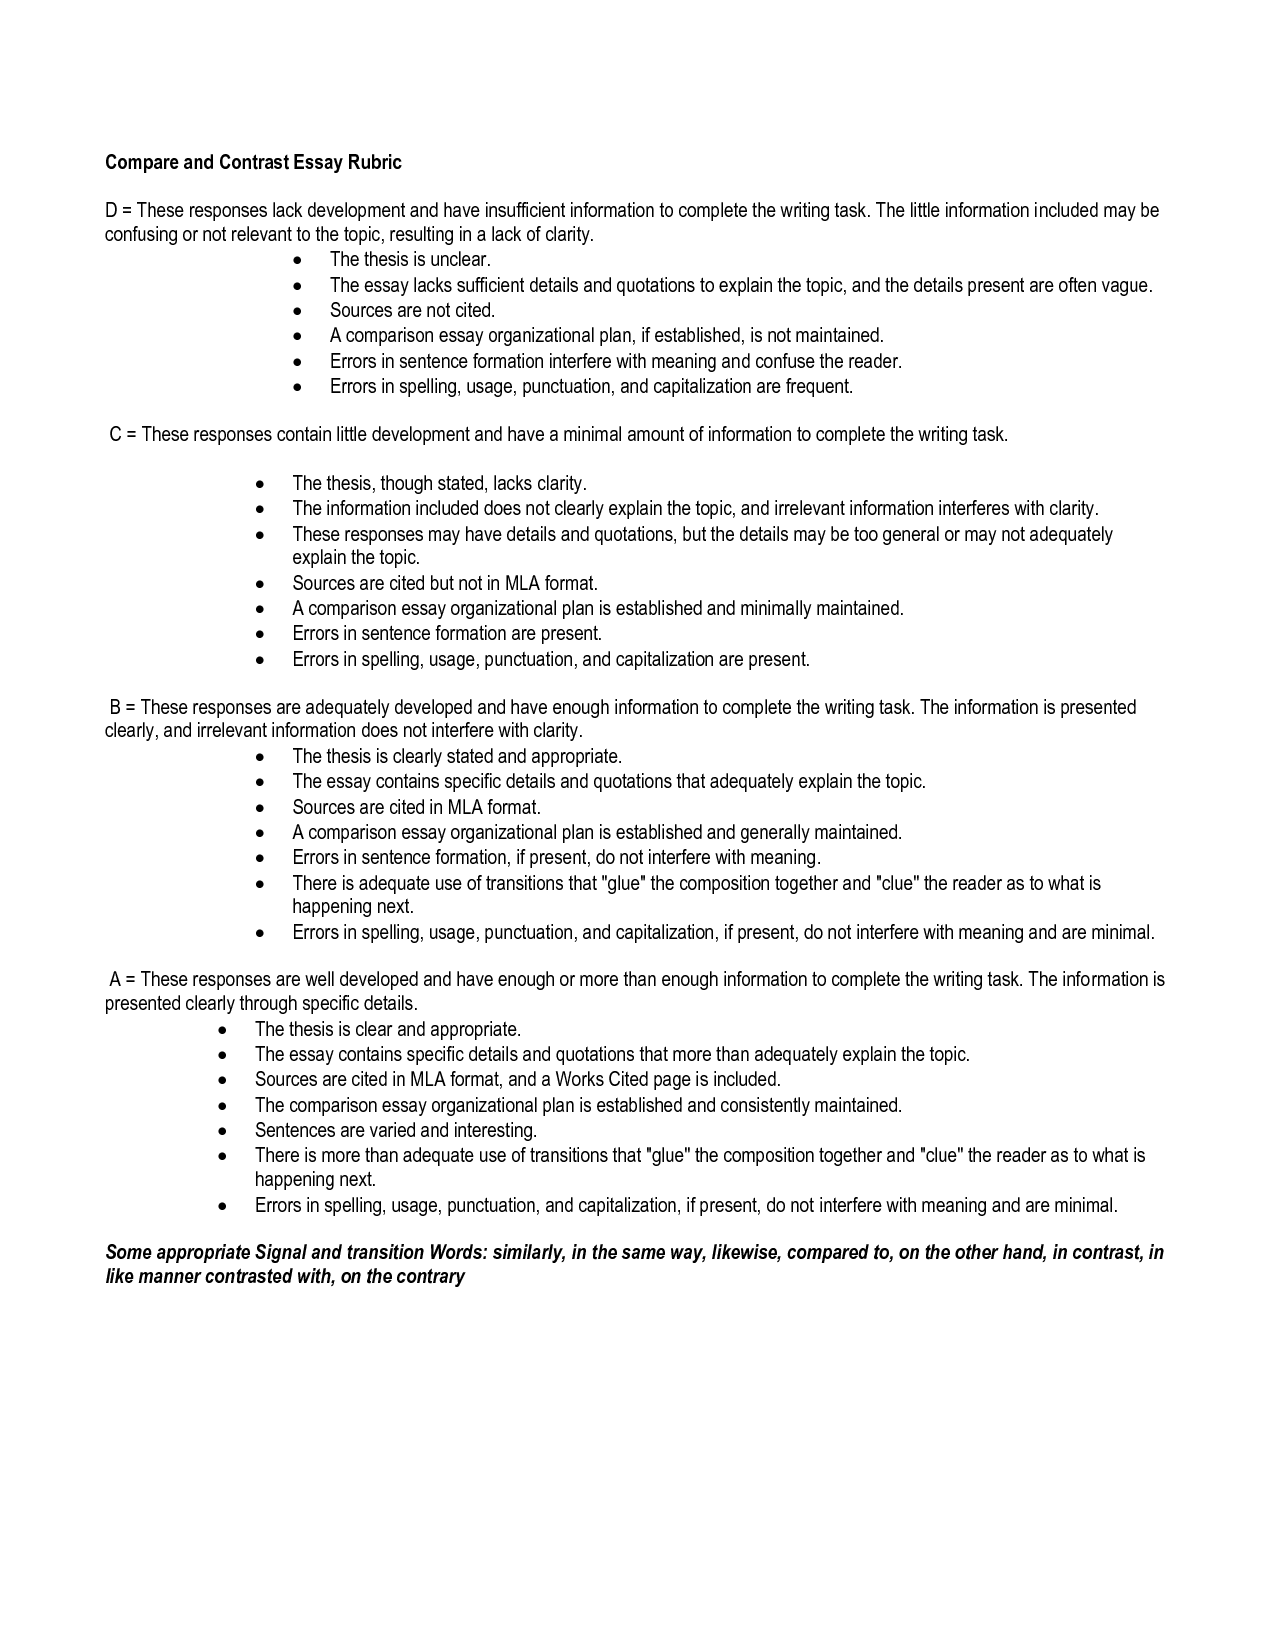 Compare And Contrast Essay Outline Template  Write  Pinterest  Compare And Contrast Essay Outline Template